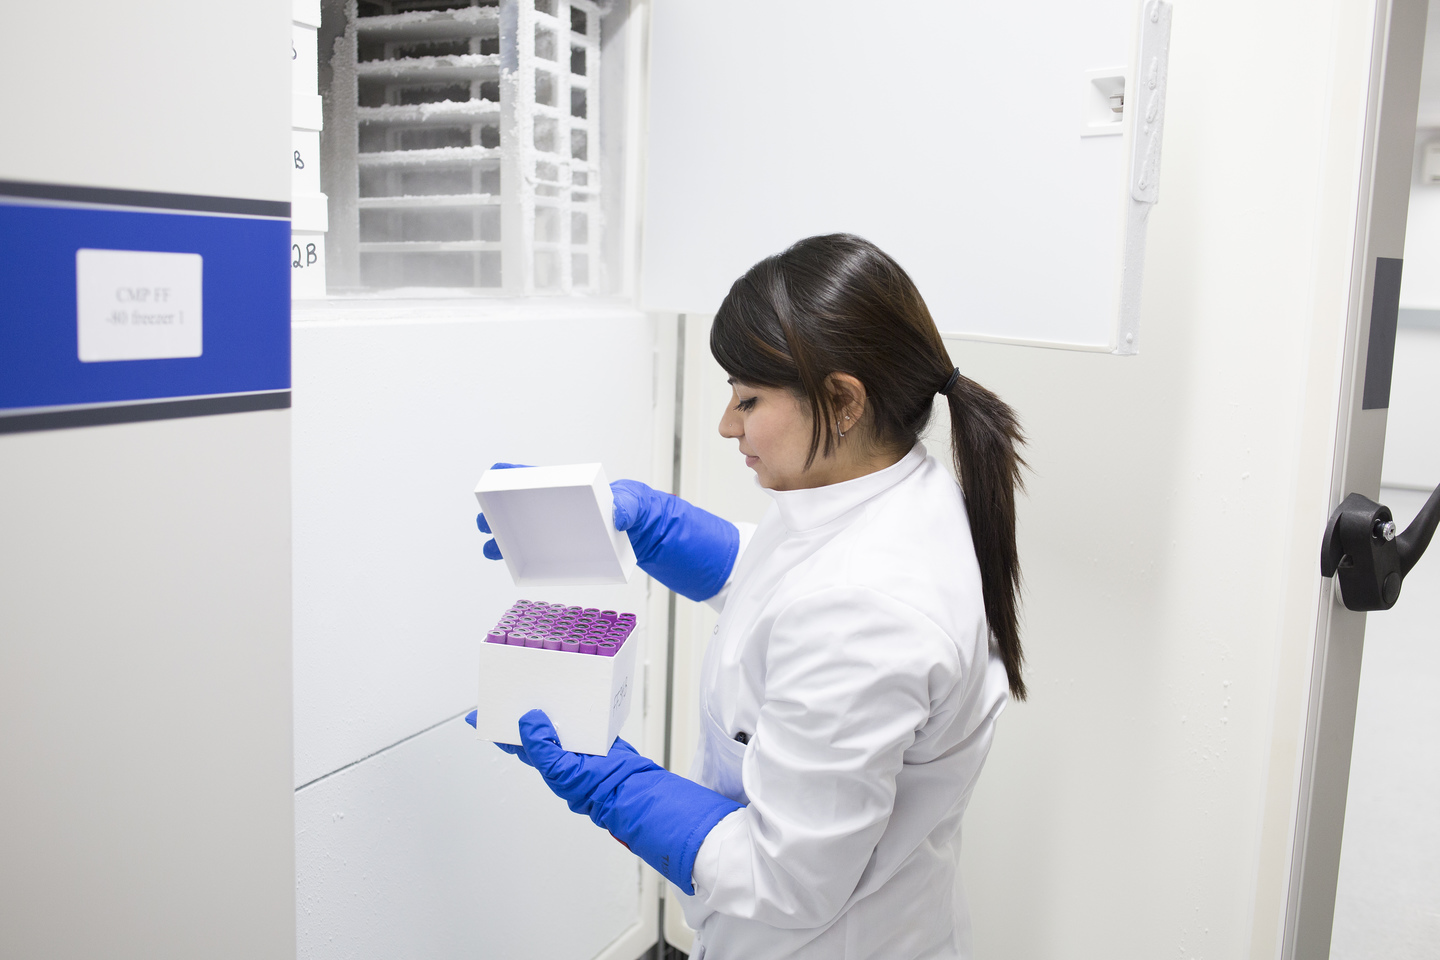 Researcher taking a sample from a freezer